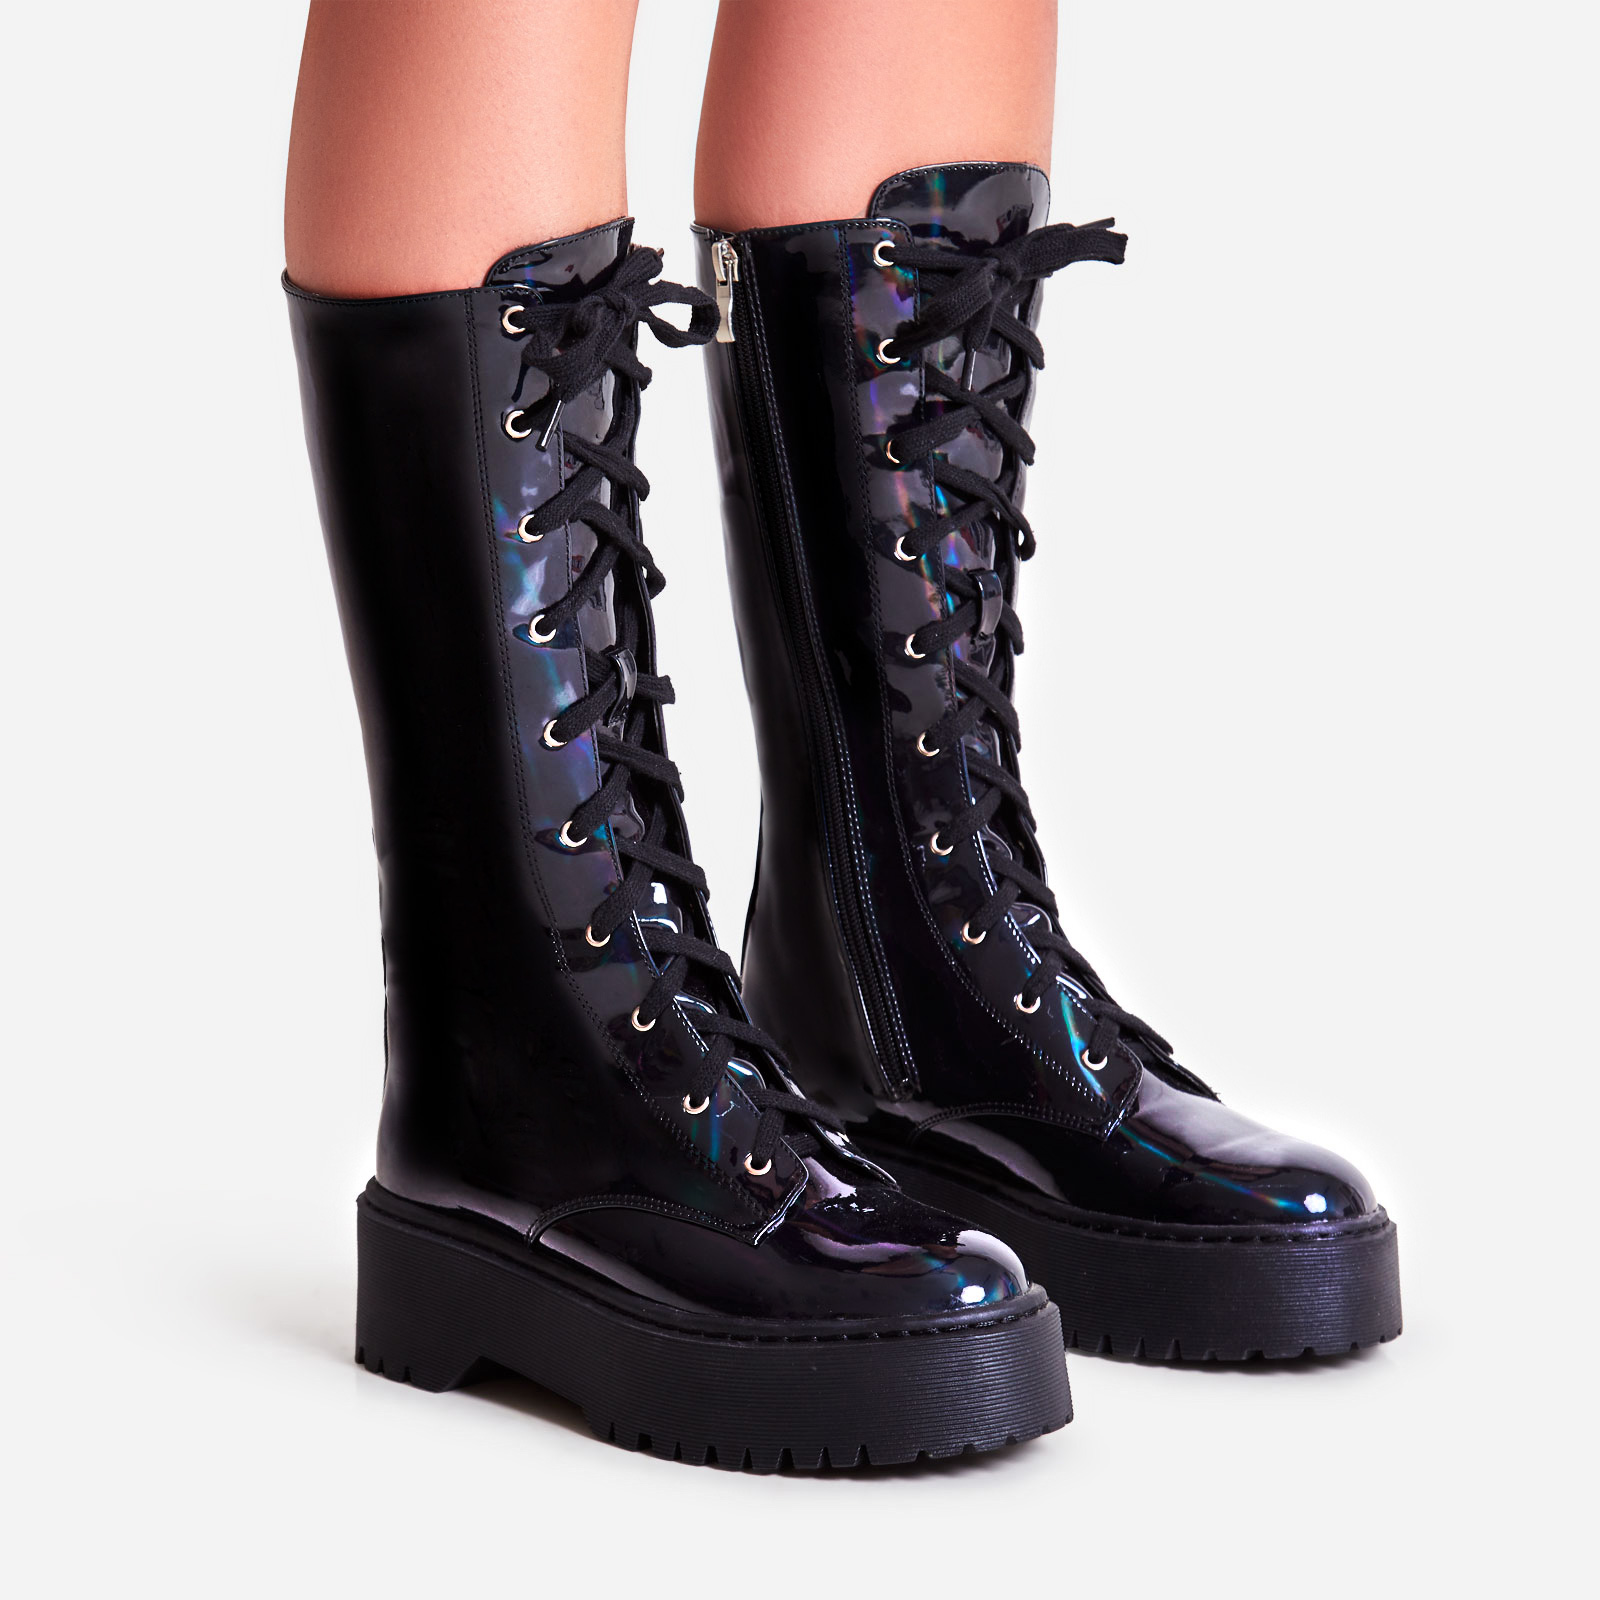 Tribeca Knee High Lace Up Ankle Biker Boot In Black Holographic Faux Leather